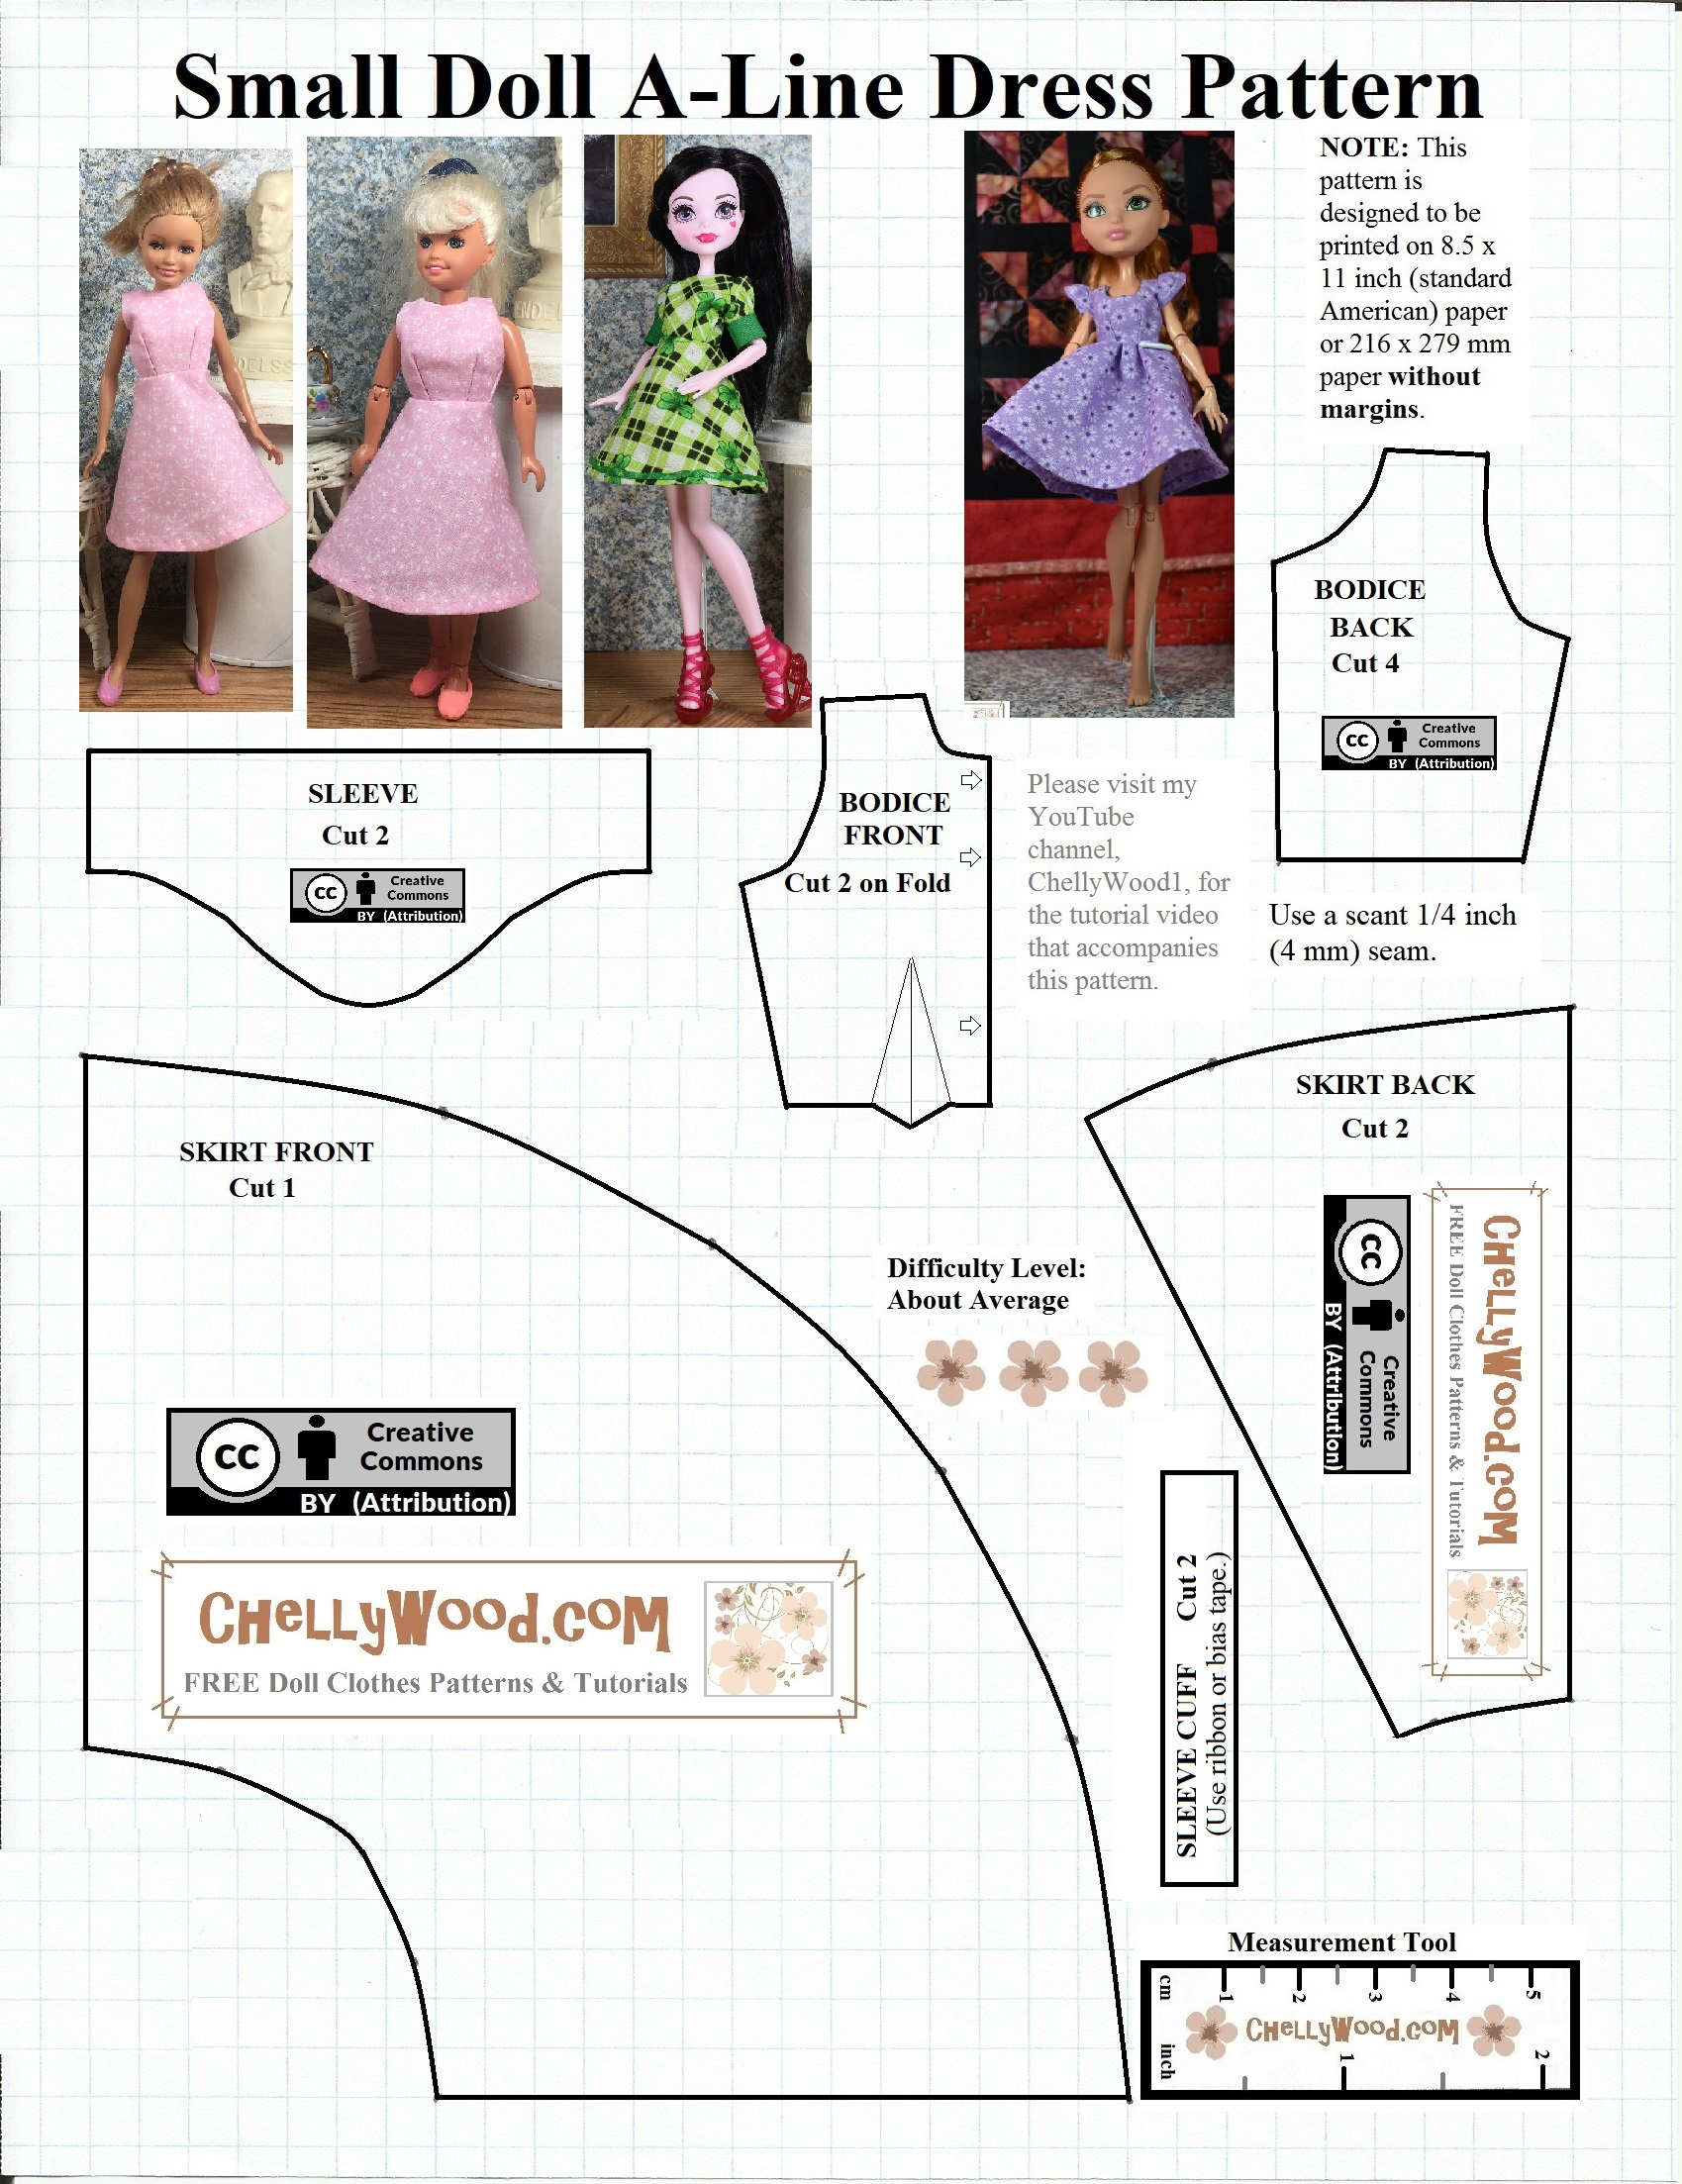 image about Printable Sewing Patterns referred to as Monster Higher Doll Clothing Routines Free of charge Doll Dresses Layouts